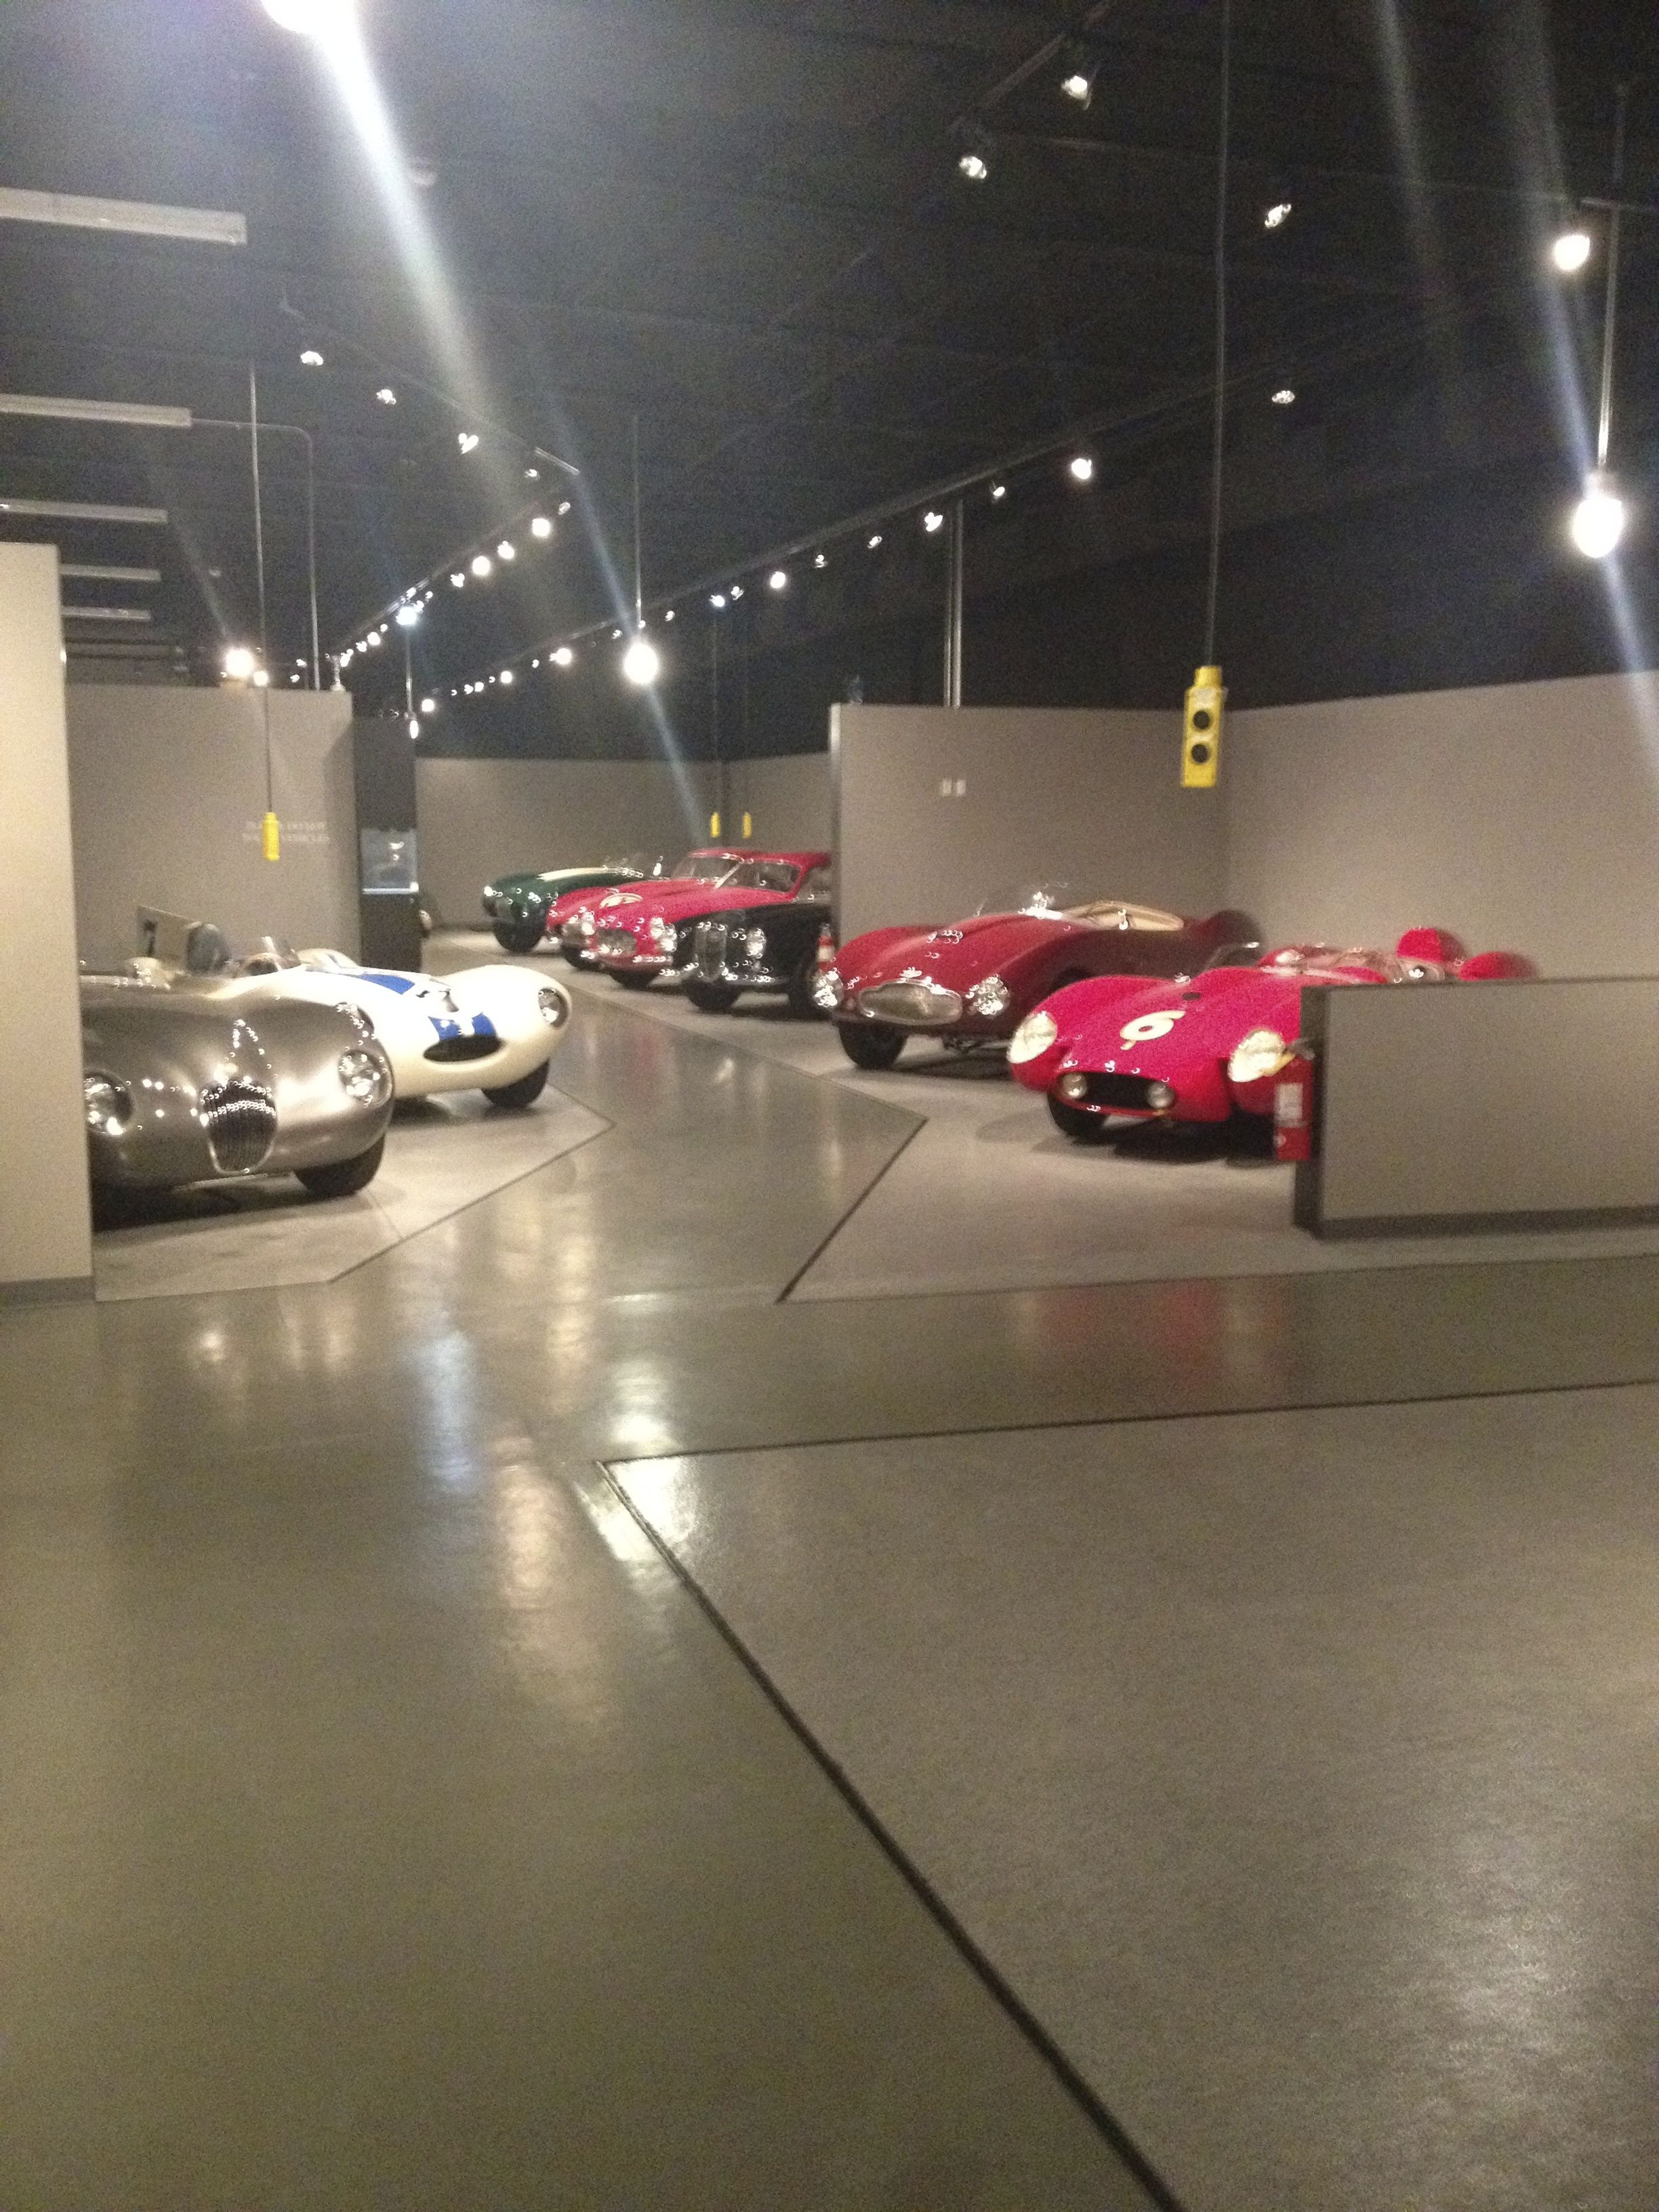 Bill Pope S Car Museum In Scottsdale Arizona Cars Antique Cars